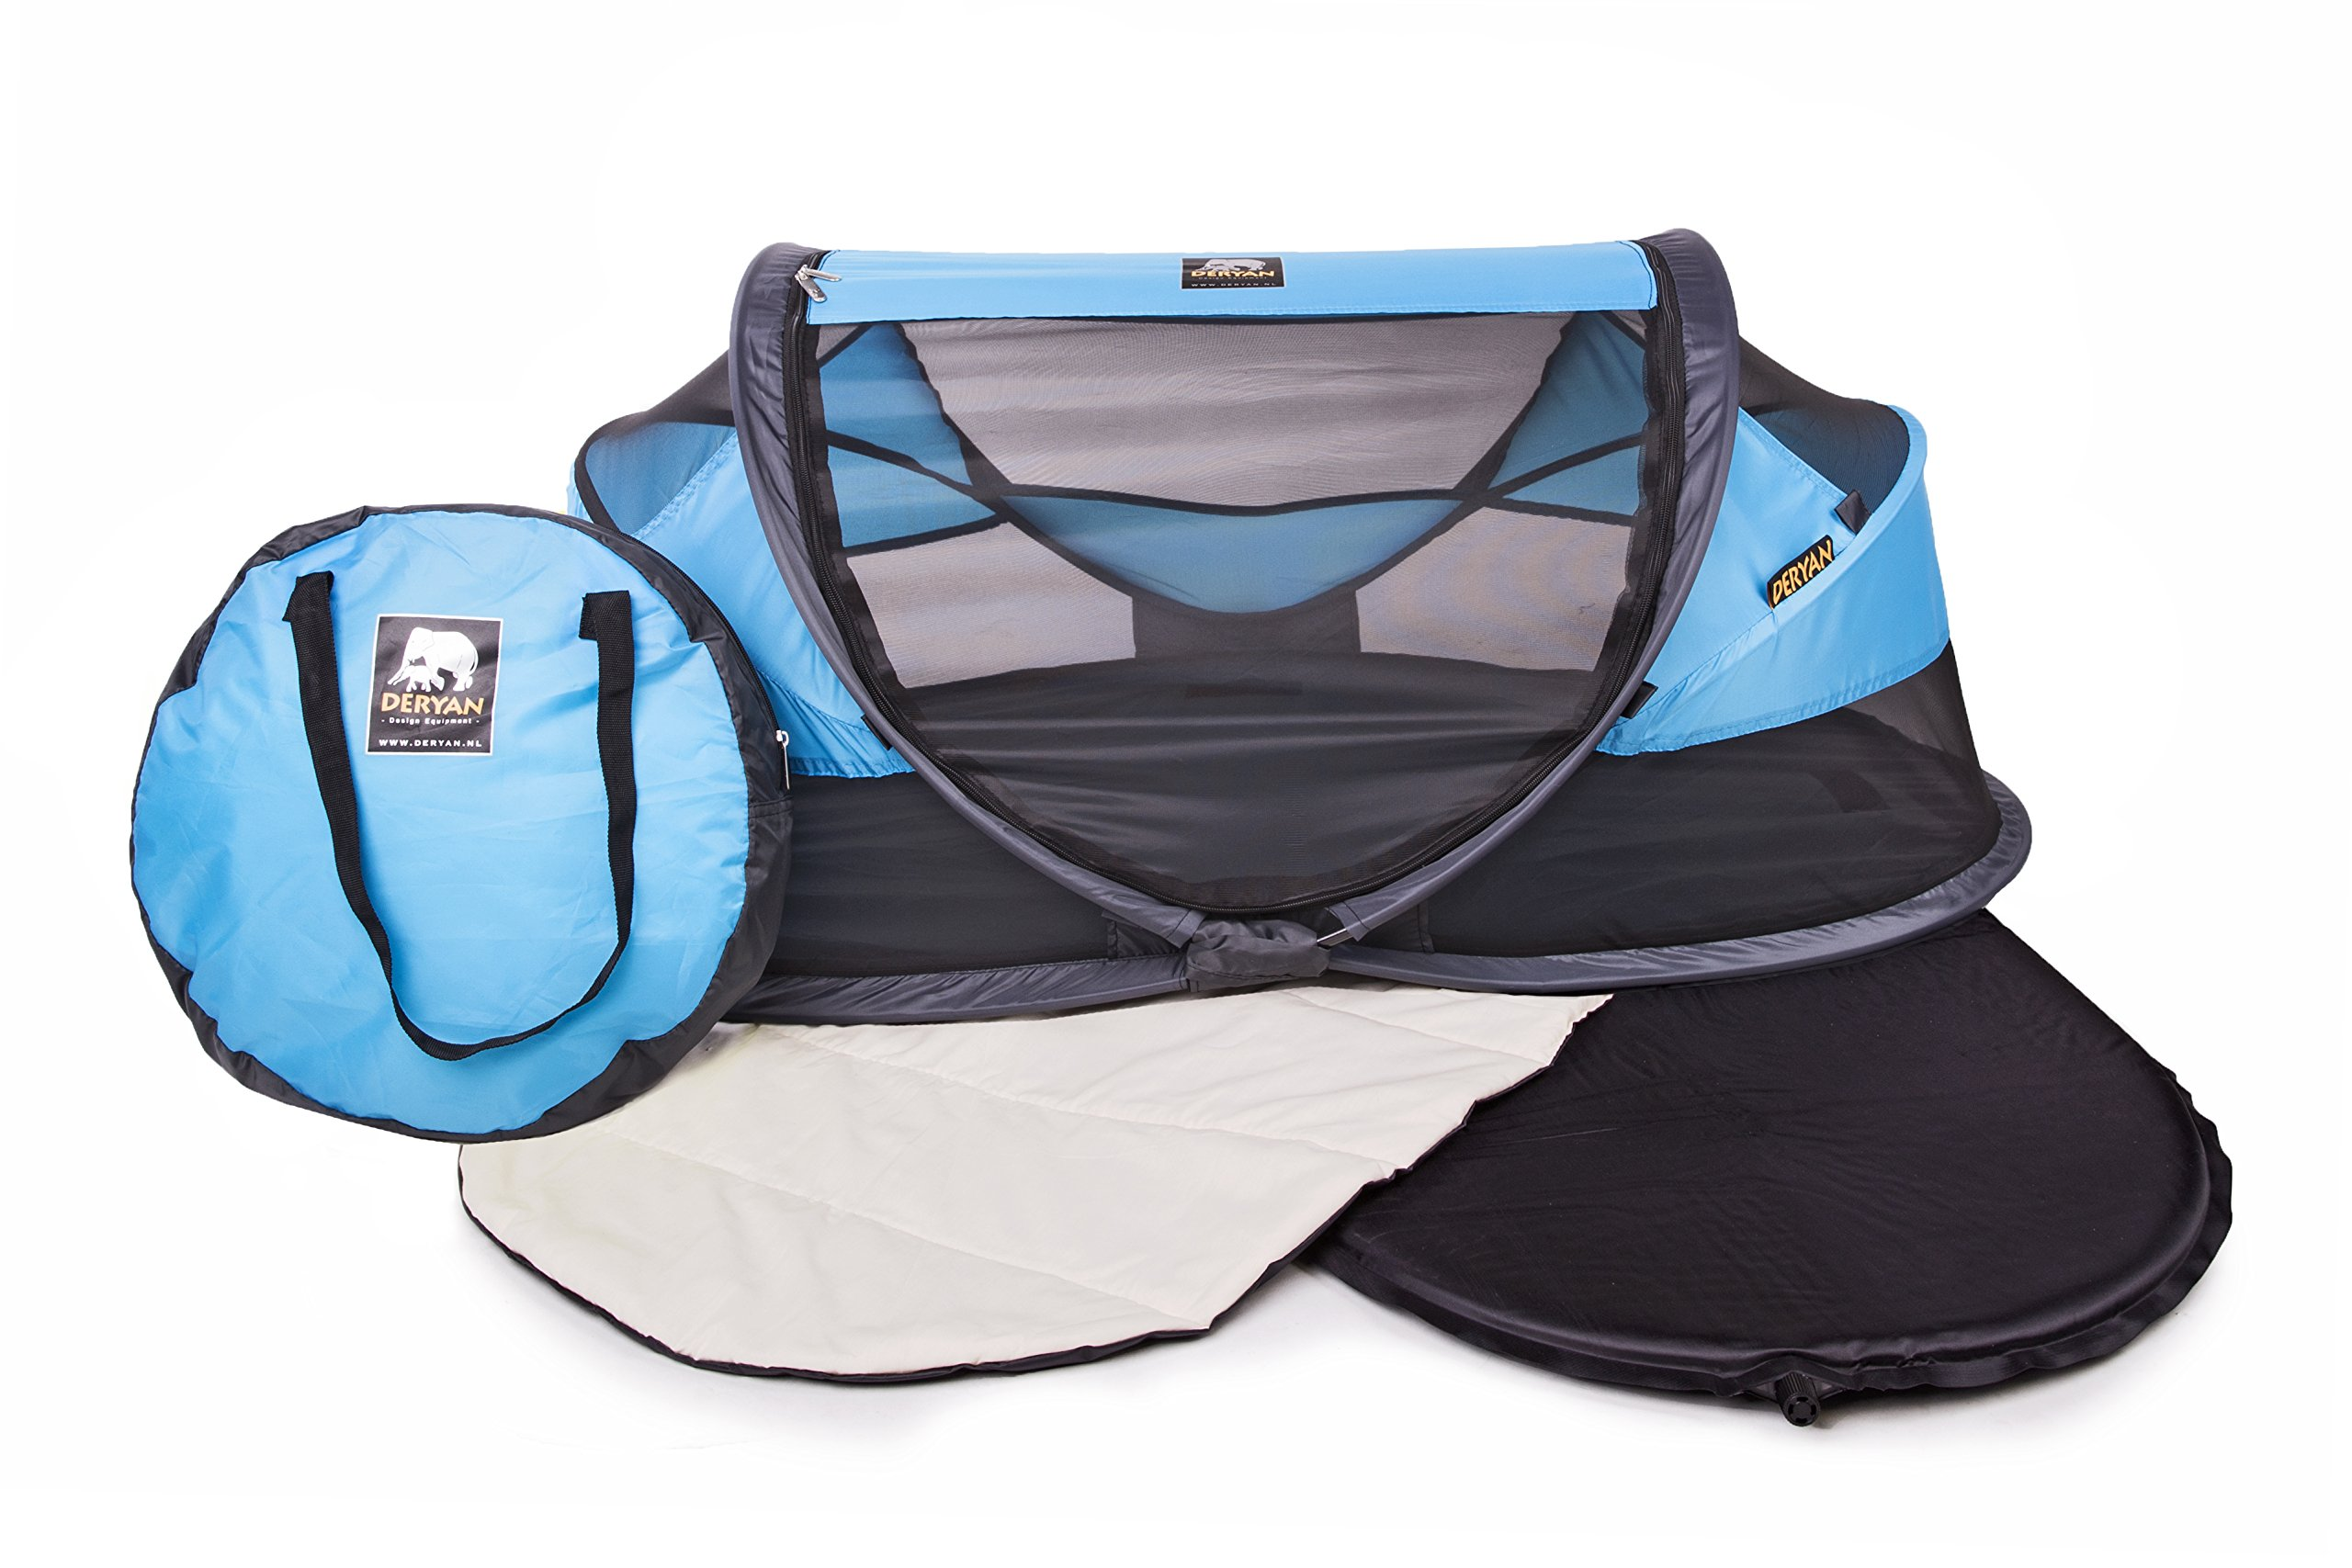 Deryan travel cot / travel cot Baby Luxe travel tent including sleeping mat, self-inflatable air mattress and carrying bag with pop-up built within 2 seconds, Blue Deryan 50% UV Protection and flame retardant fabric Setup in 2 seconds and a anti-musquito net  3